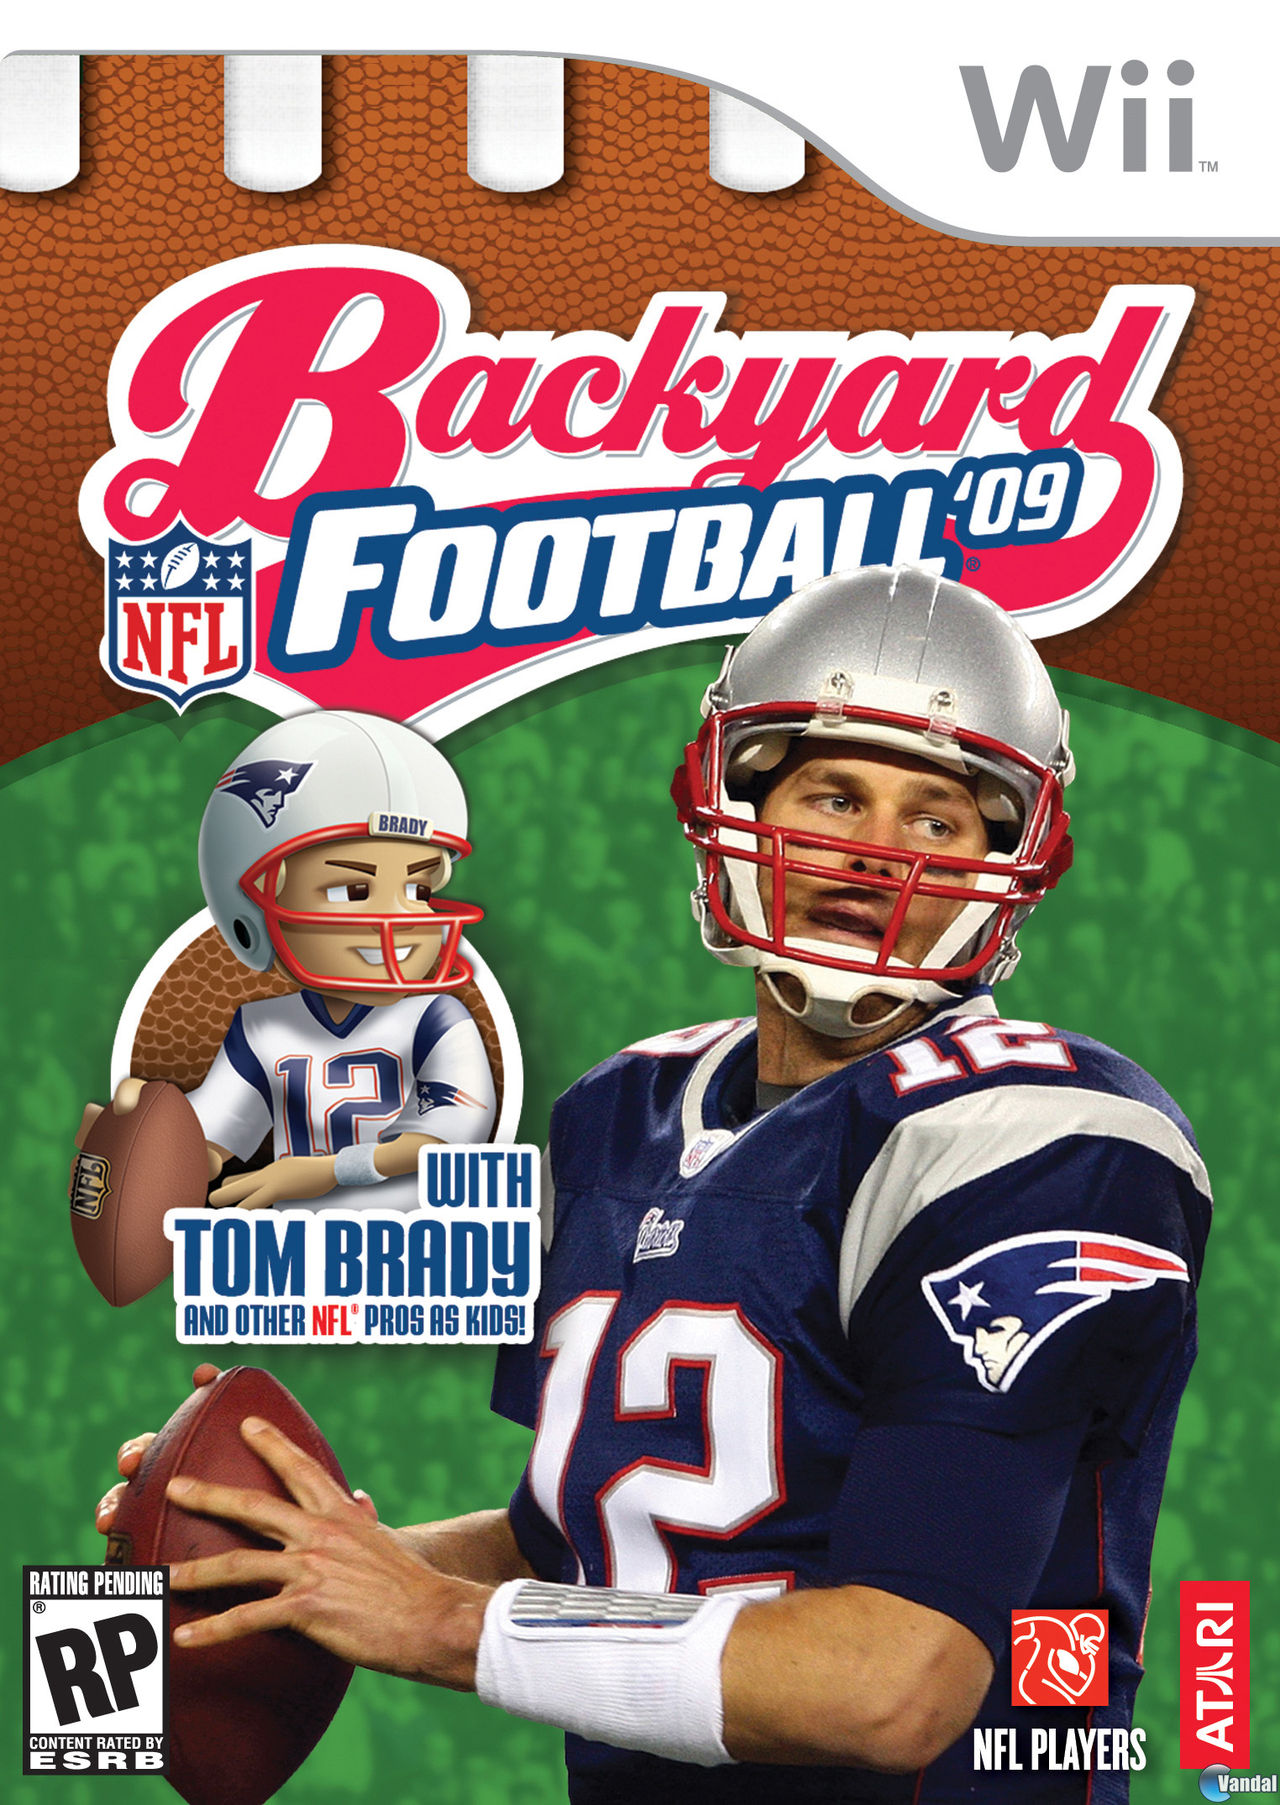 wii games backyard football download free software extremeletitbit